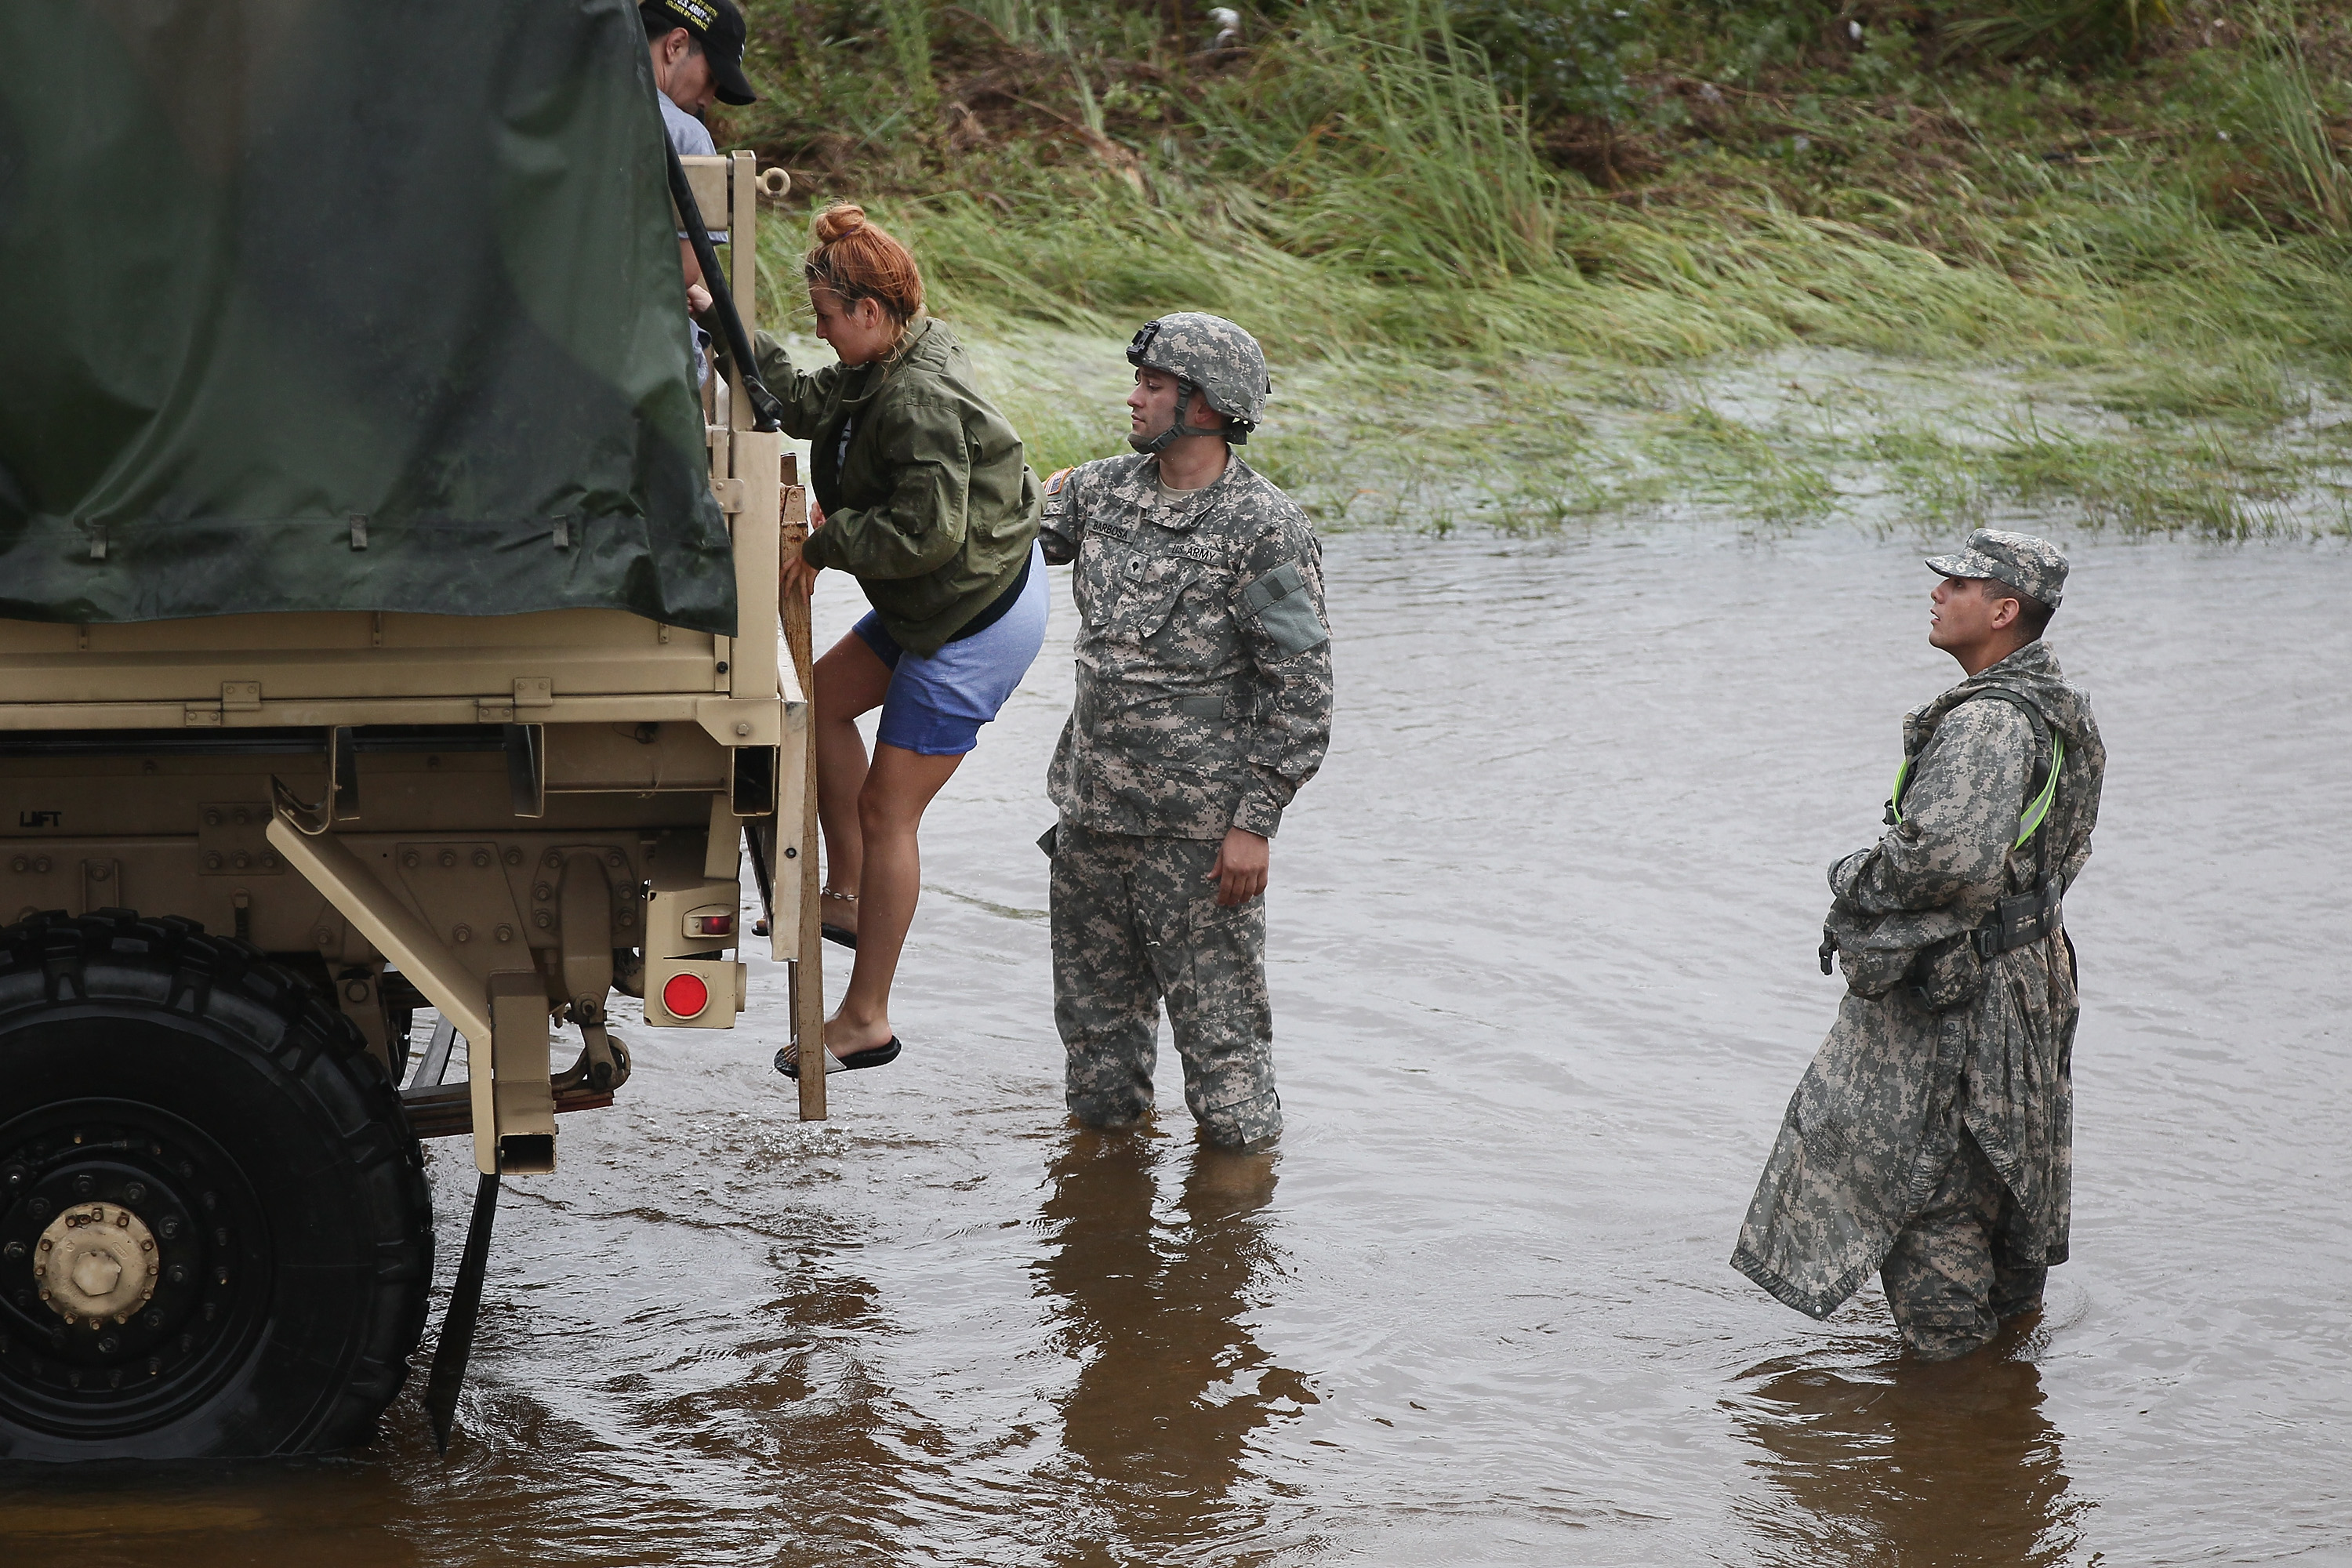 Army to release water from 2 Houston reservoirs, flooding nearby homes